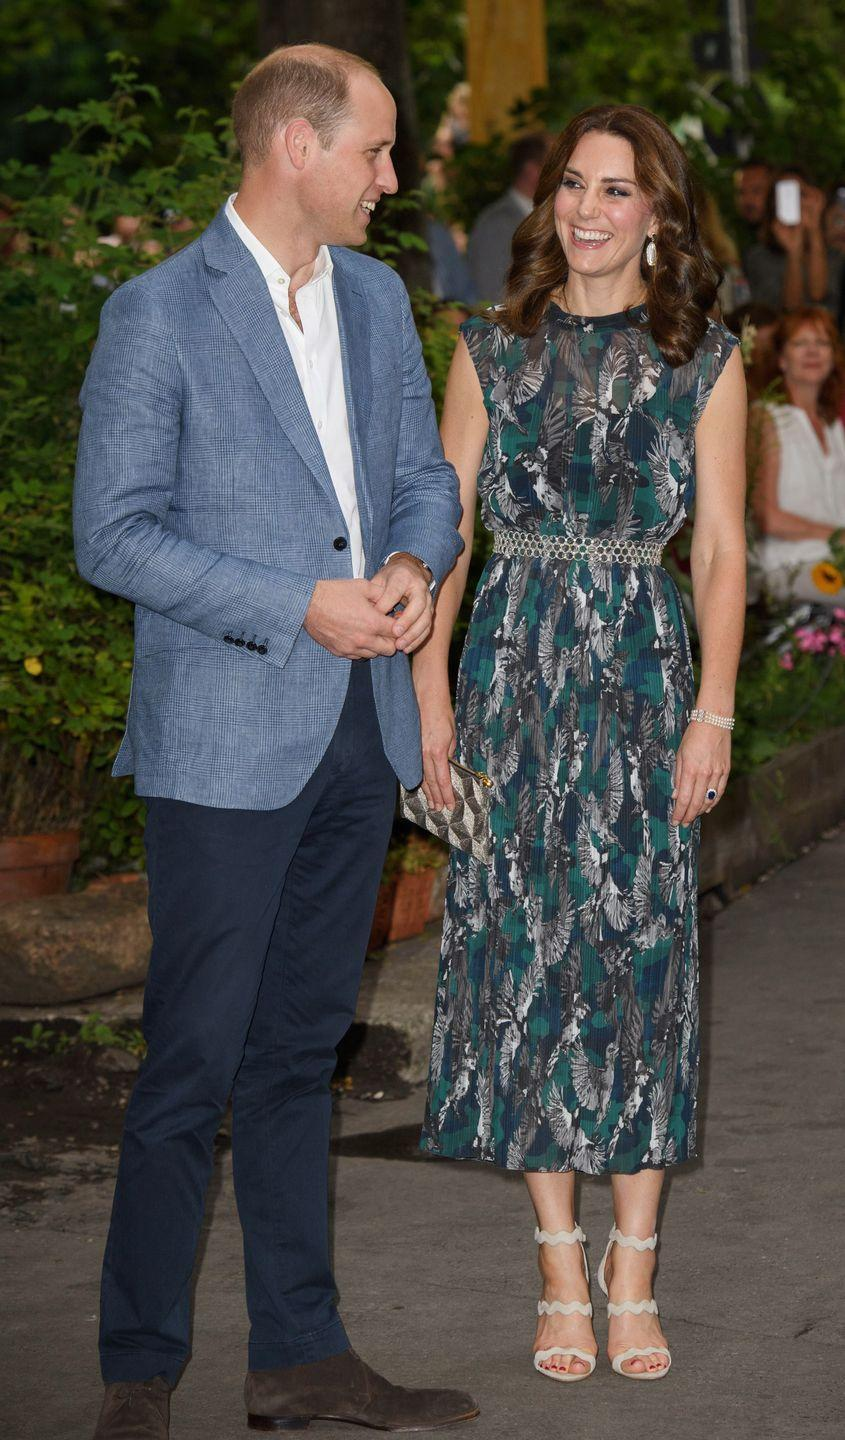 <p>Throughout the royal tour, Duchess Kate has proved to be an expert in diplomatic dressing. During a visit to the Clärchens Ballhaus in Berlin, for example, she opted for a printed dress by Germany designer Markus Lupfer.</p>